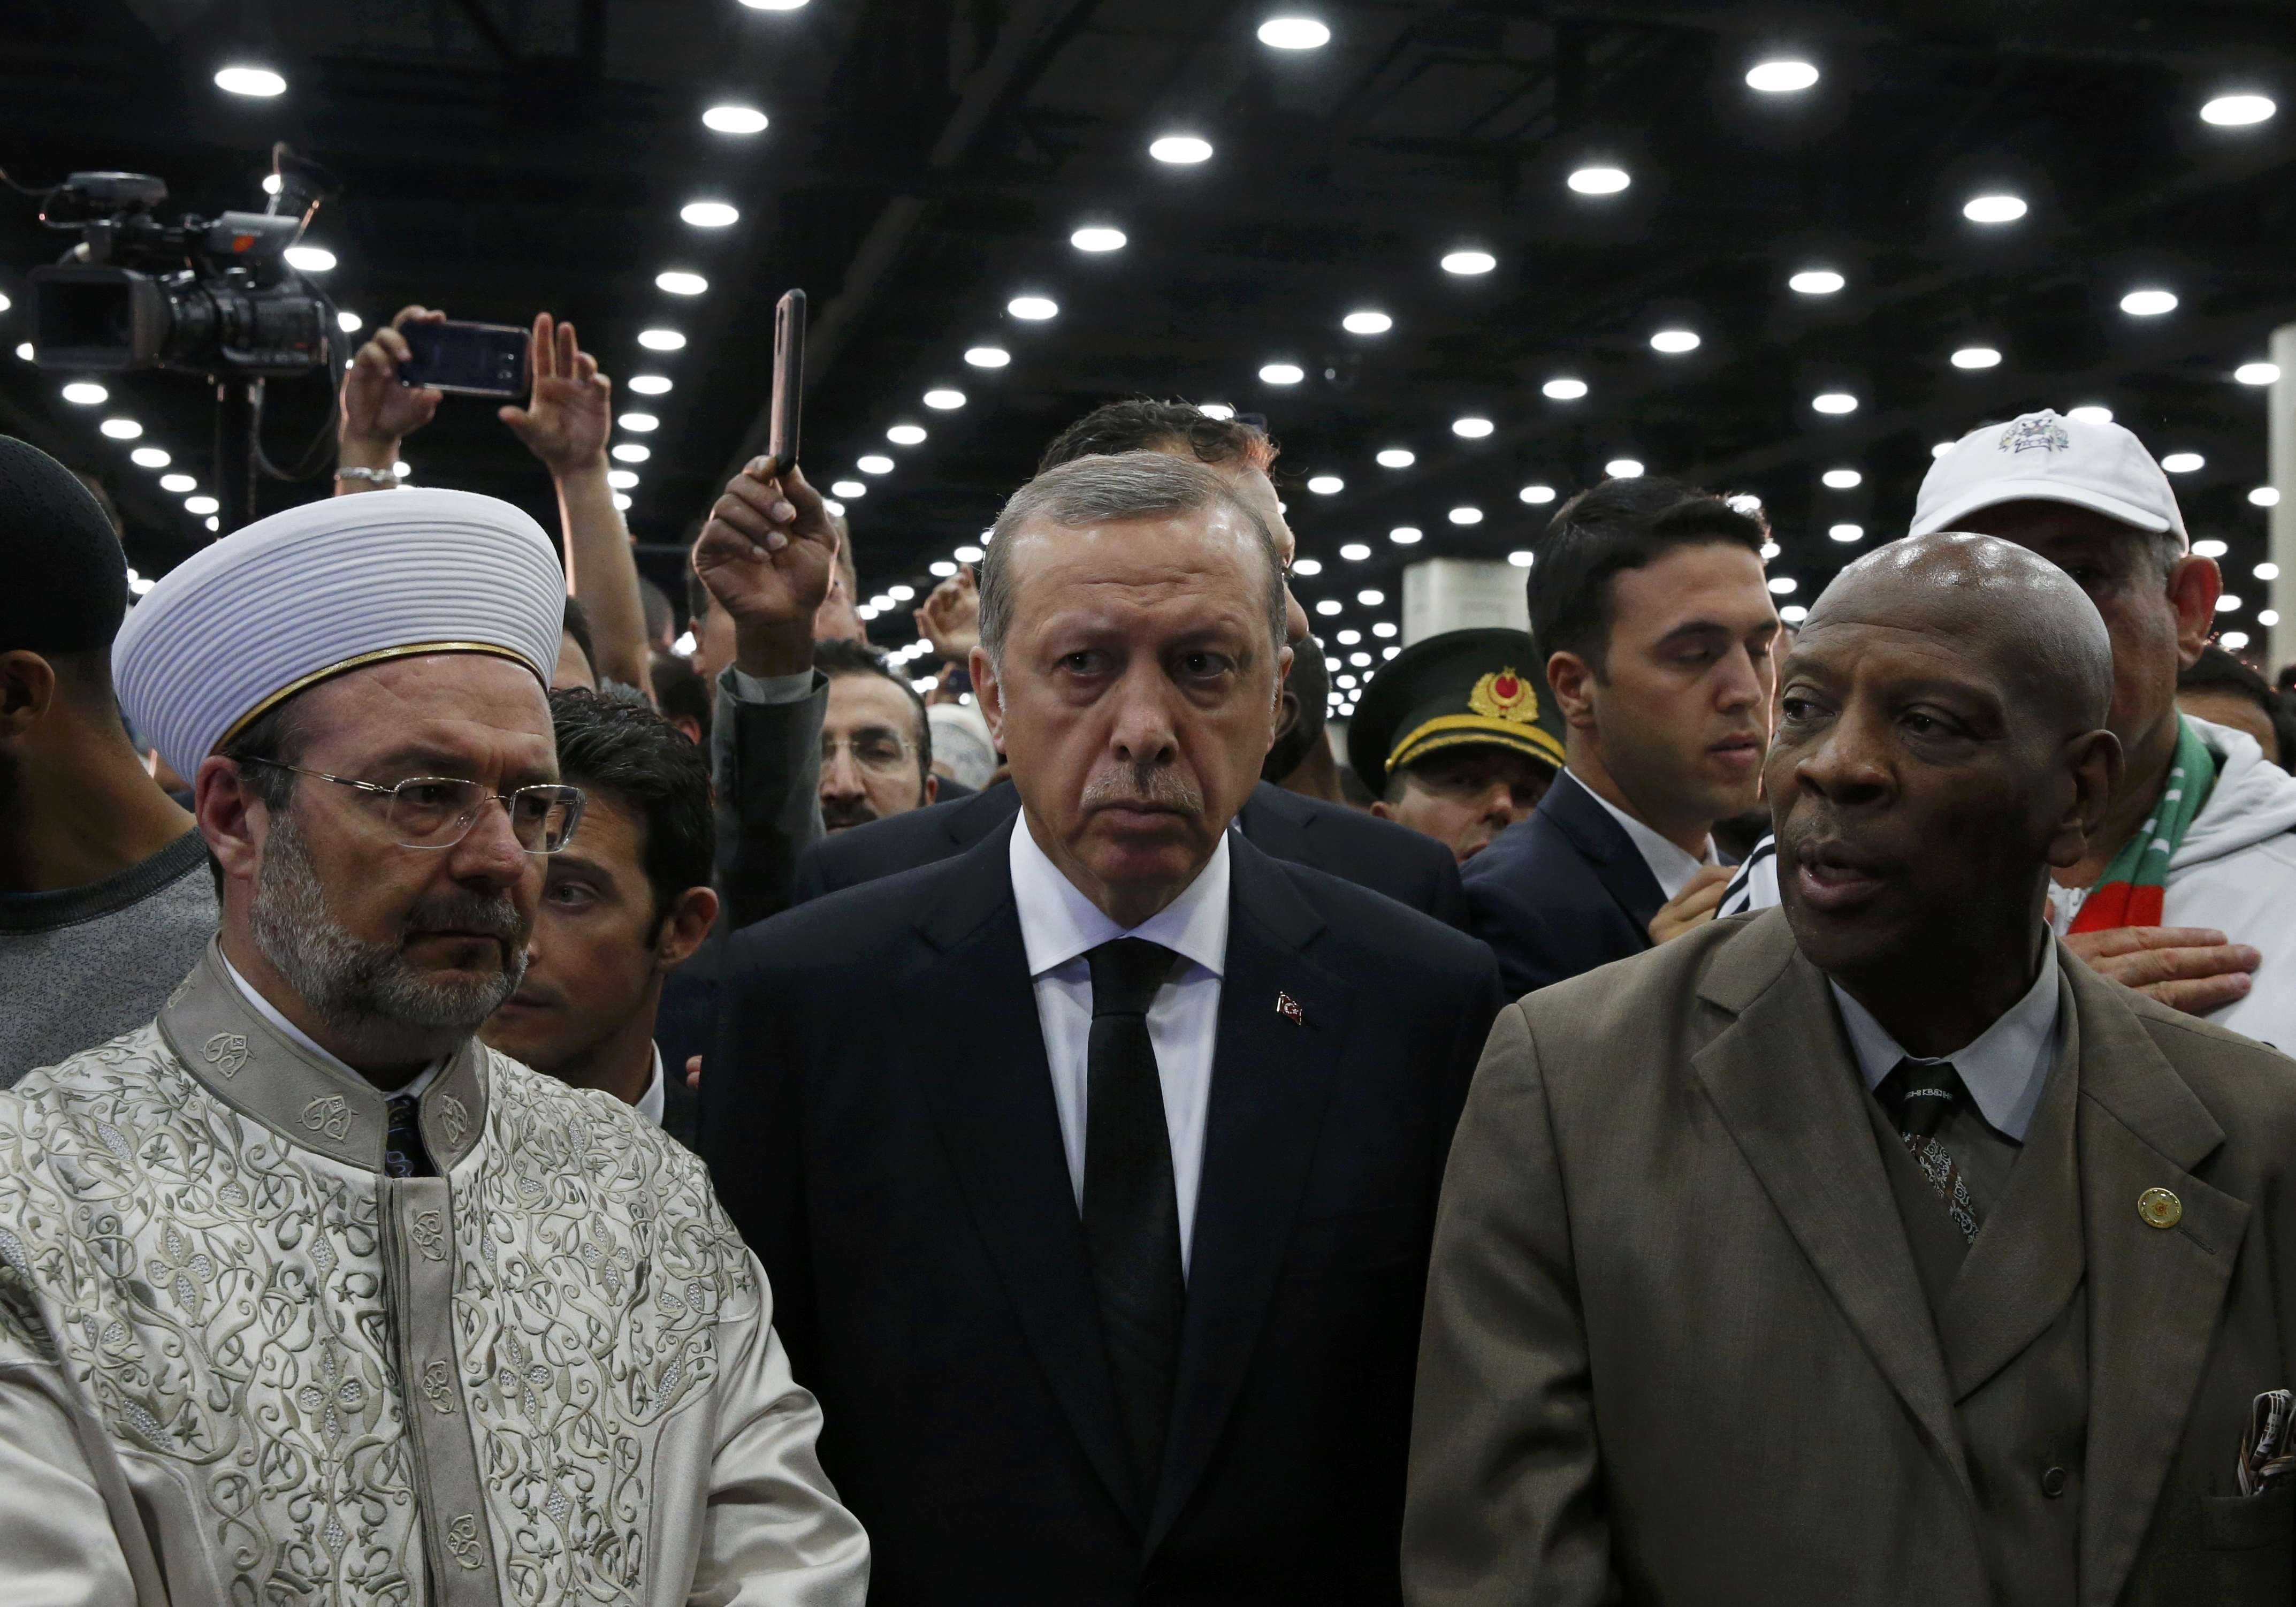 Turkish President Tayyip Erdogan (C) arrives to take part in the jenazah, an Islamic funeral prayer, for the late boxing champion Muhammad Ali in Louisville, Kentucky, U.S. June 9, 2016